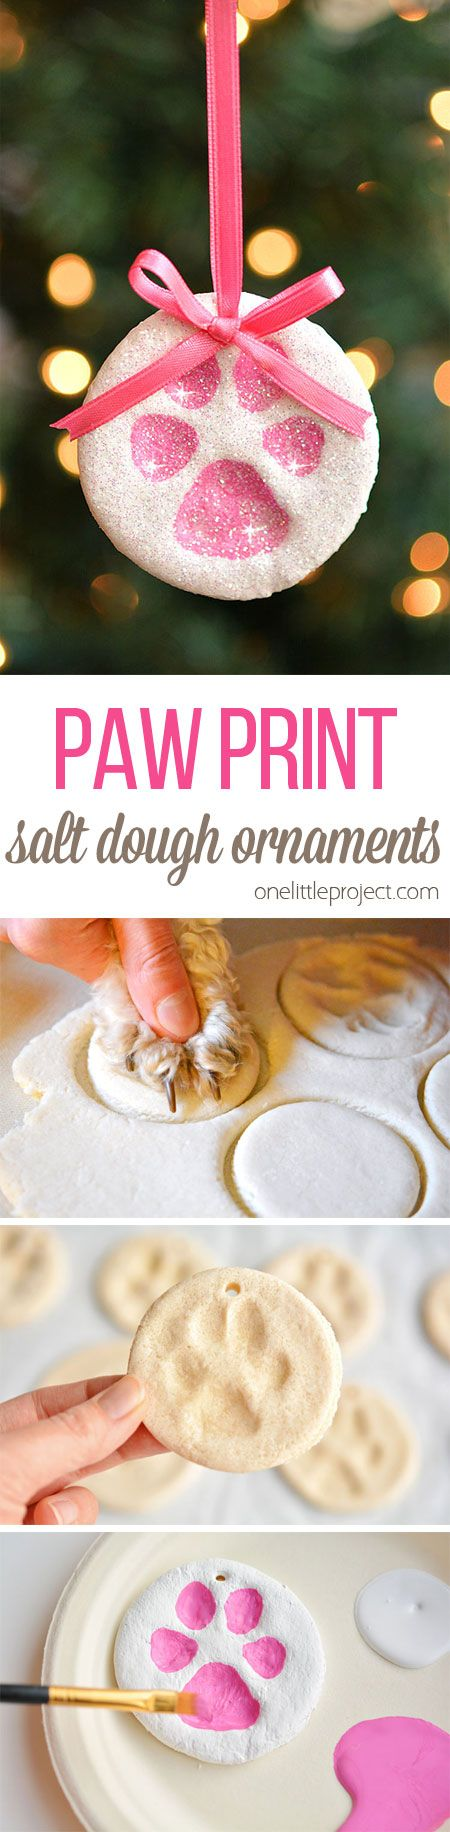 Paw Print Salt Dough Ornaments.